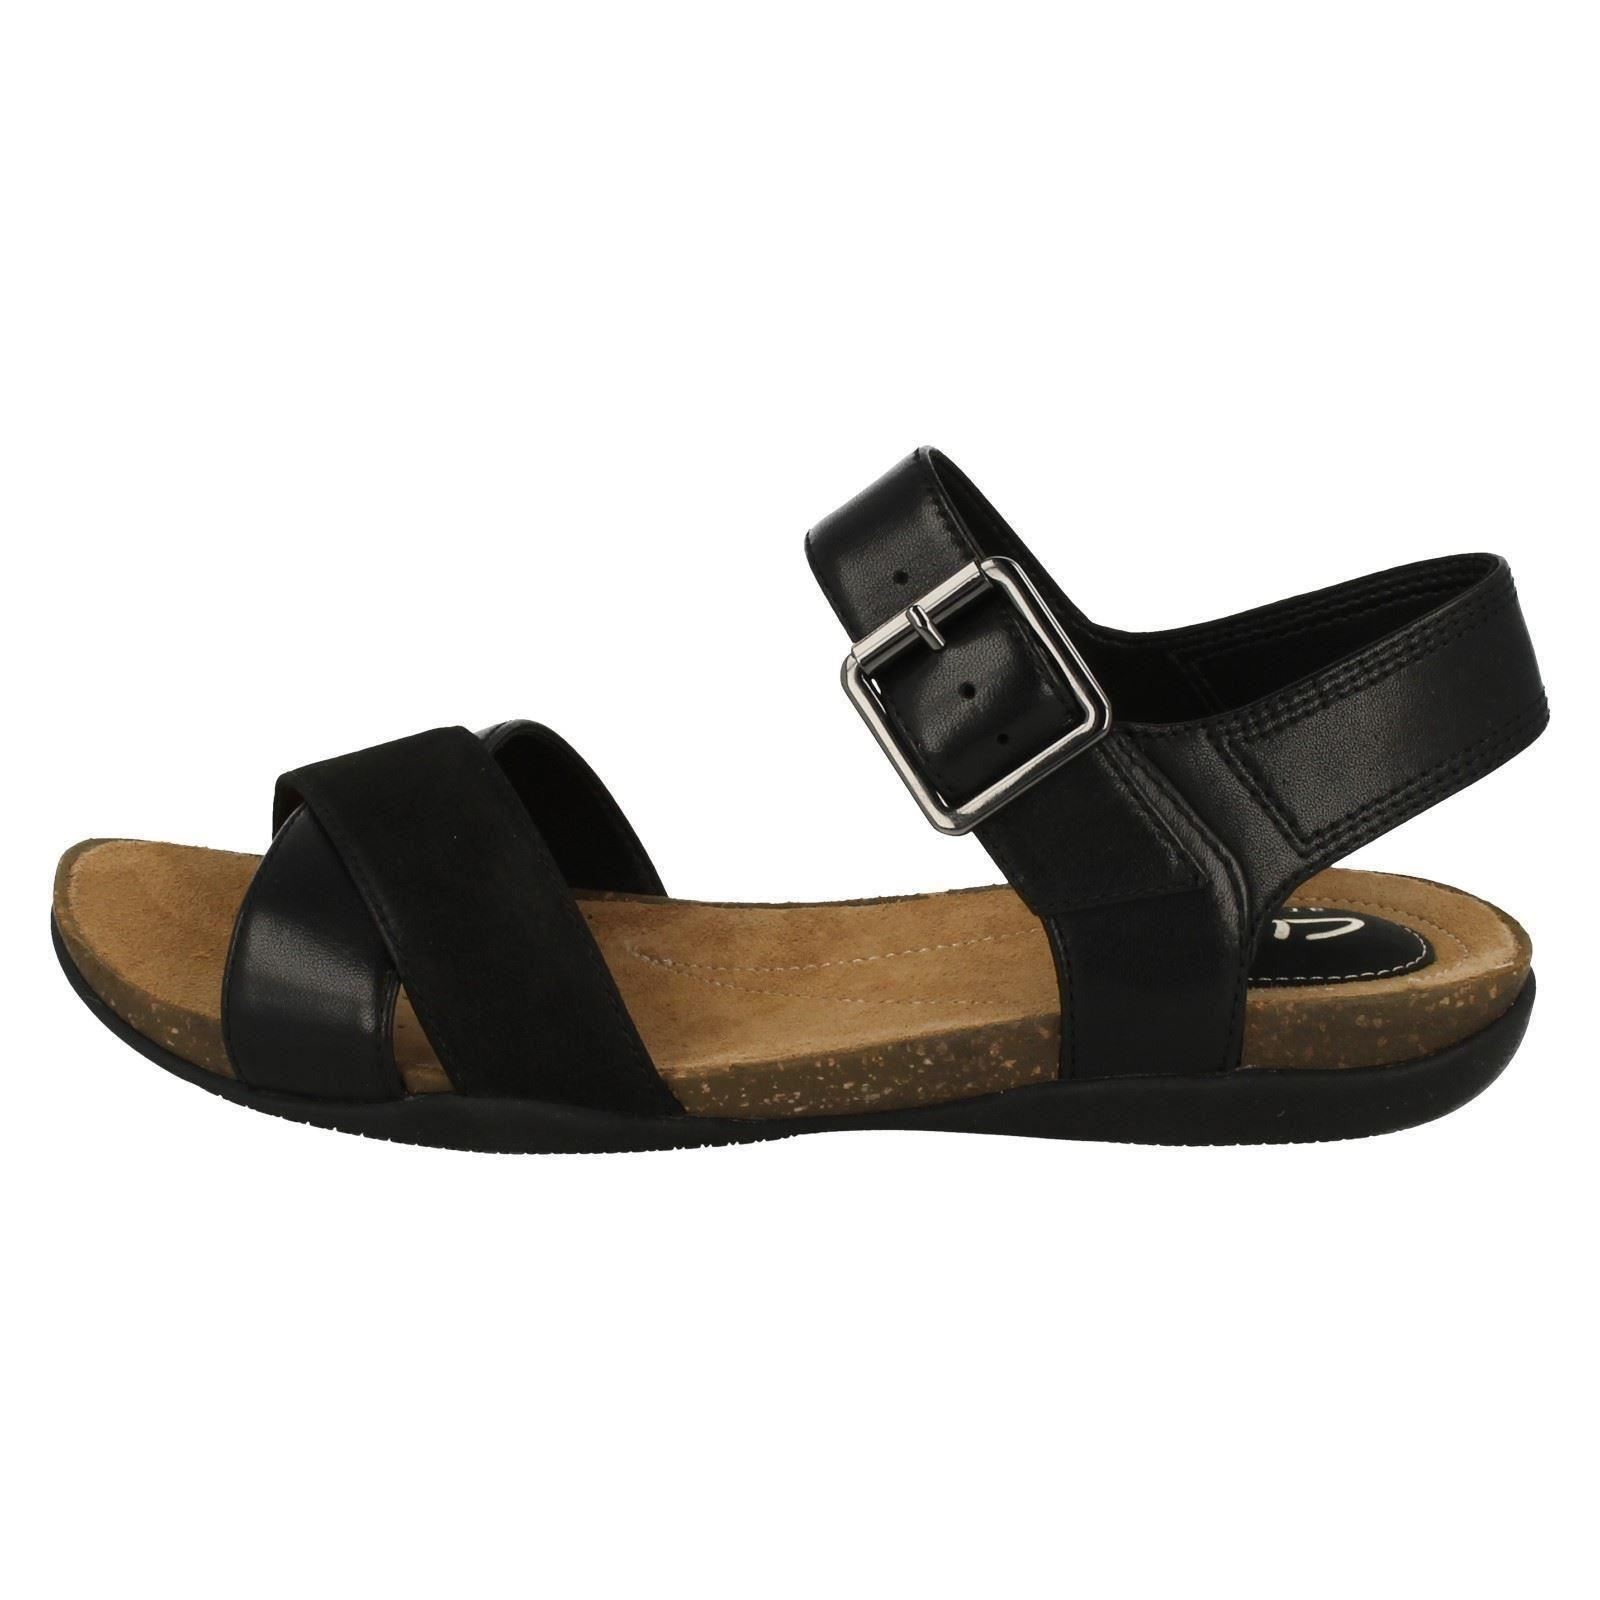 Casual Air With Summer Autumn Black Clarks Ladies Sandals Buckle UxqZ0SWw5